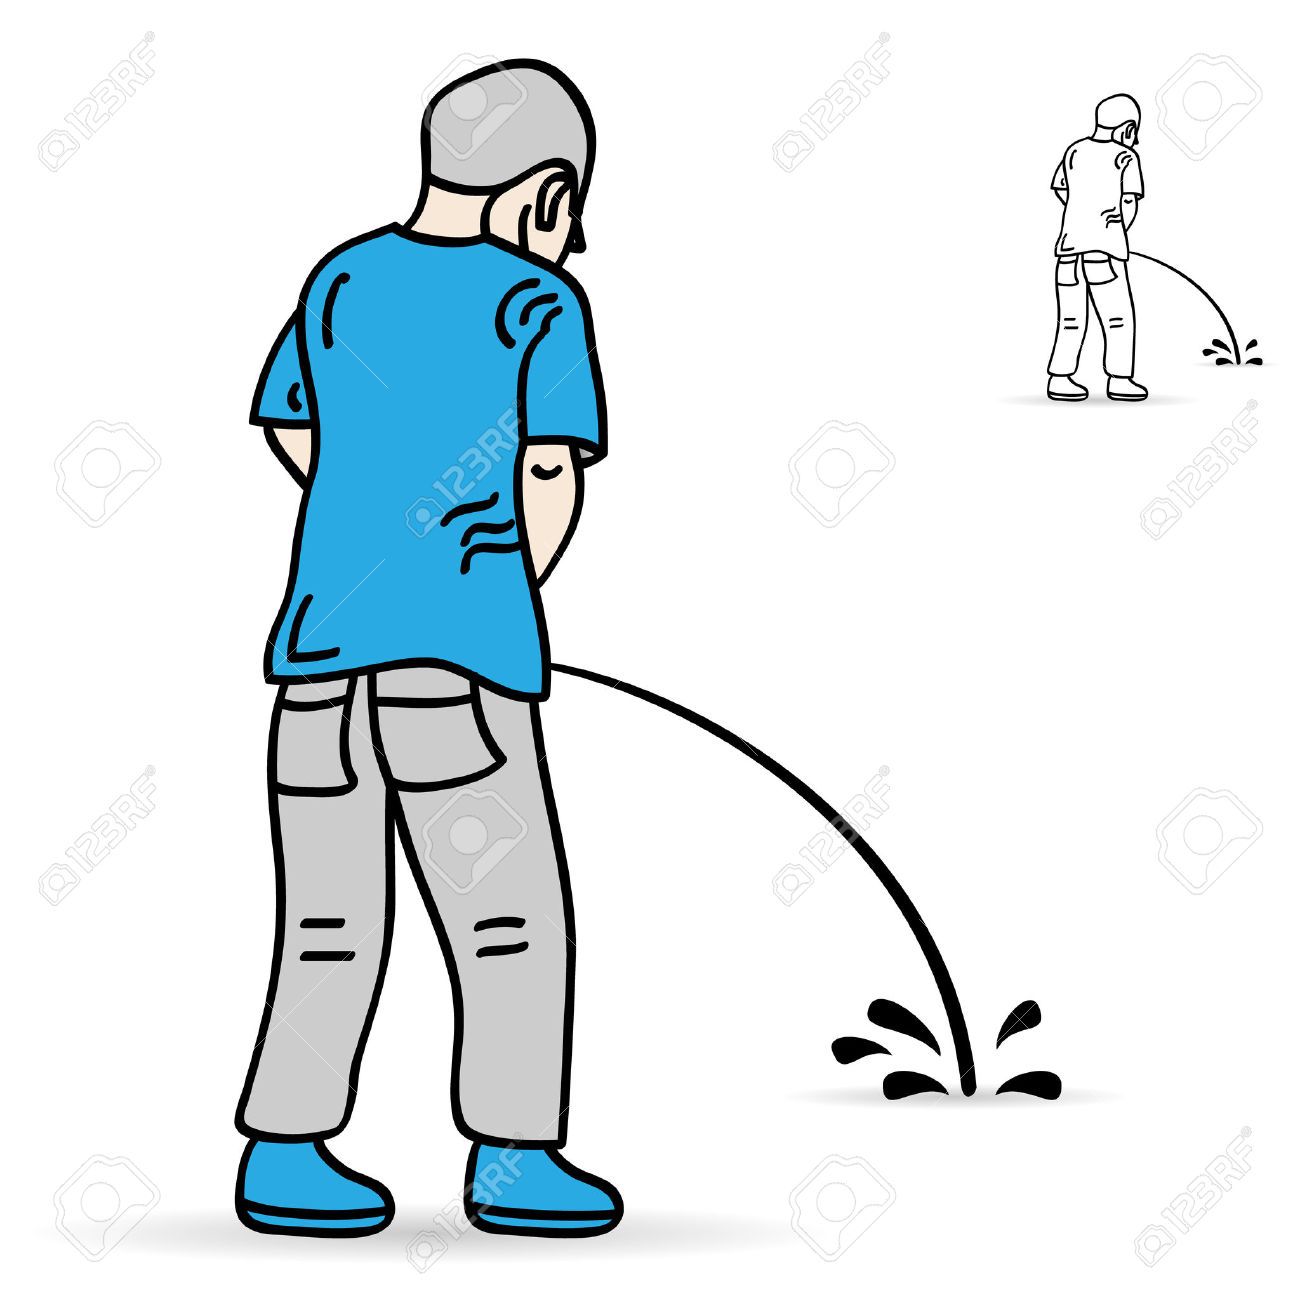 Man urinating clipart.